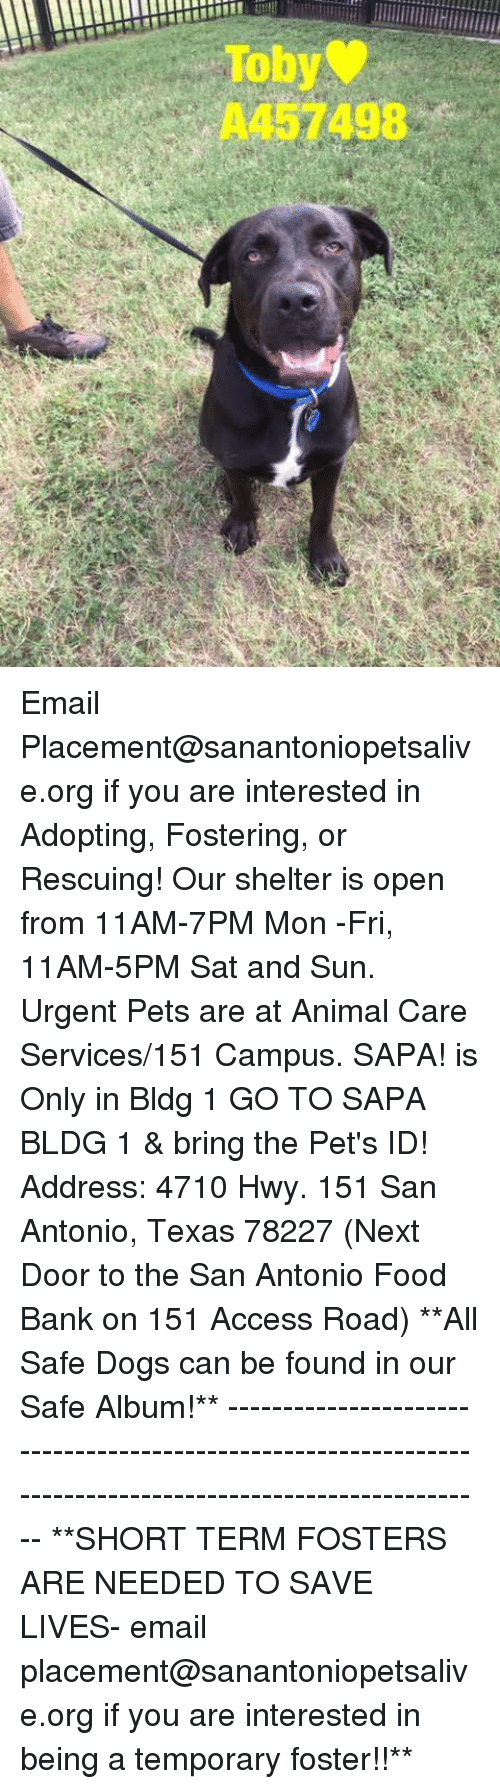 Dogs, Food, and Memes: Toby  A457498 Email Placement@sanantoniopetsalive.org if you are interested in Adopting, Fostering, or Rescuing!  Our shelter is open from 11AM-7PM Mon -Fri, 11AM-5PM Sat and Sun.  Urgent Pets are at Animal Care Services/151 Campus. SAPA! is Only in Bldg 1 GO TO SAPA BLDG 1 & bring the Pet's ID! Address: 4710 Hwy. 151 San Antonio, Texas 78227 (Next Door to the San Antonio Food Bank on 151 Access Road)  **All Safe Dogs can be found in our Safe Album!** ---------------------------------------------------------------------------------------------------------- **SHORT TERM FOSTERS ARE NEEDED TO SAVE LIVES- email placement@sanantoniopetsalive.org if you are interested in being a temporary foster!!**